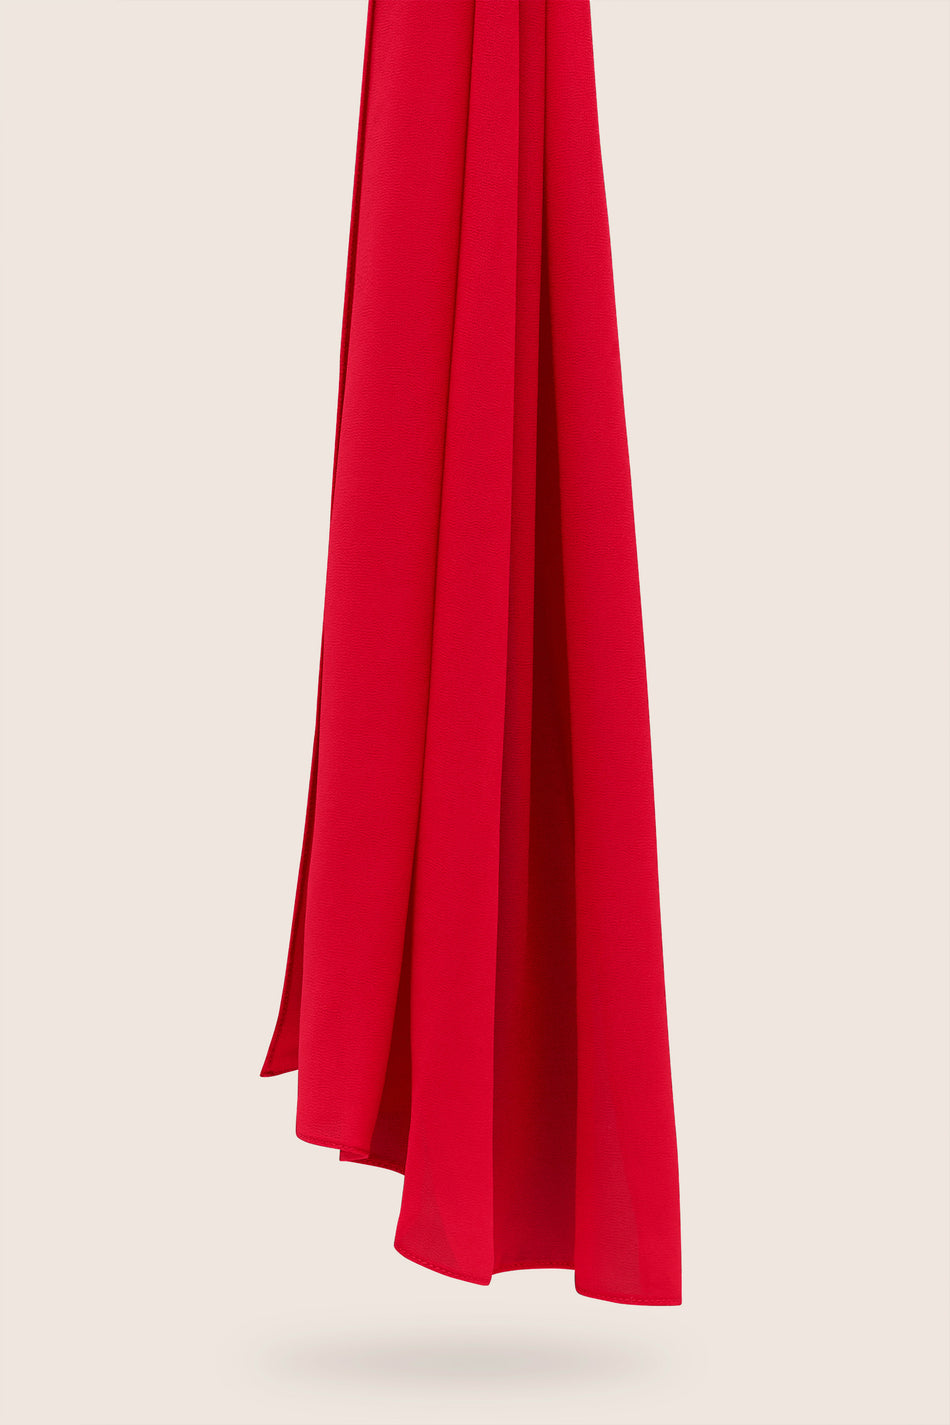 Everyday Georgette Hijab - Fire Engine Red